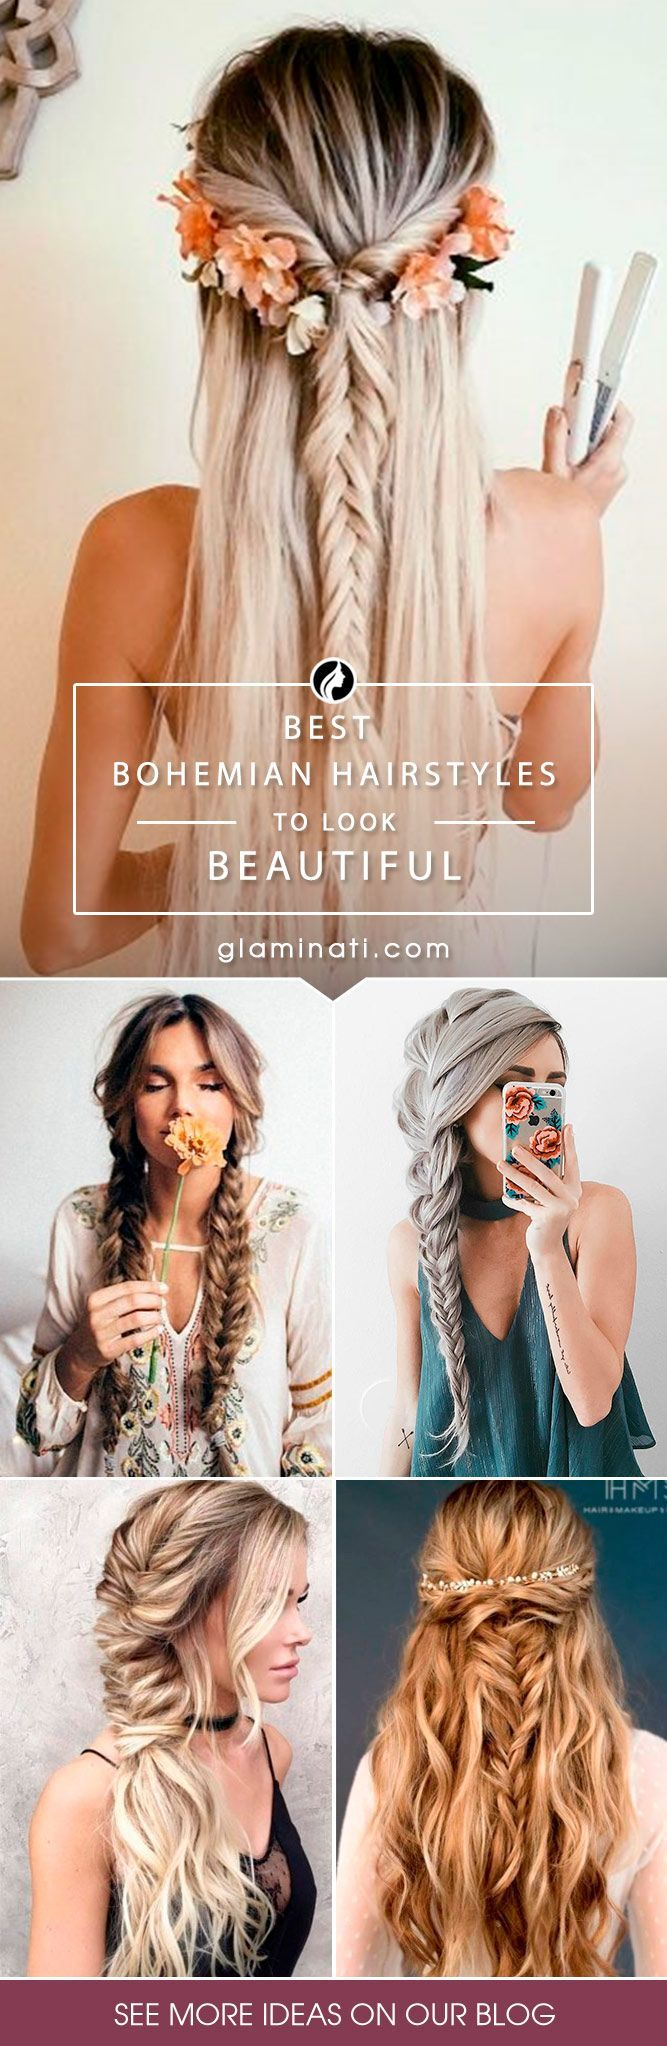 Bohemian hairstyles are worth mastering because they are creative